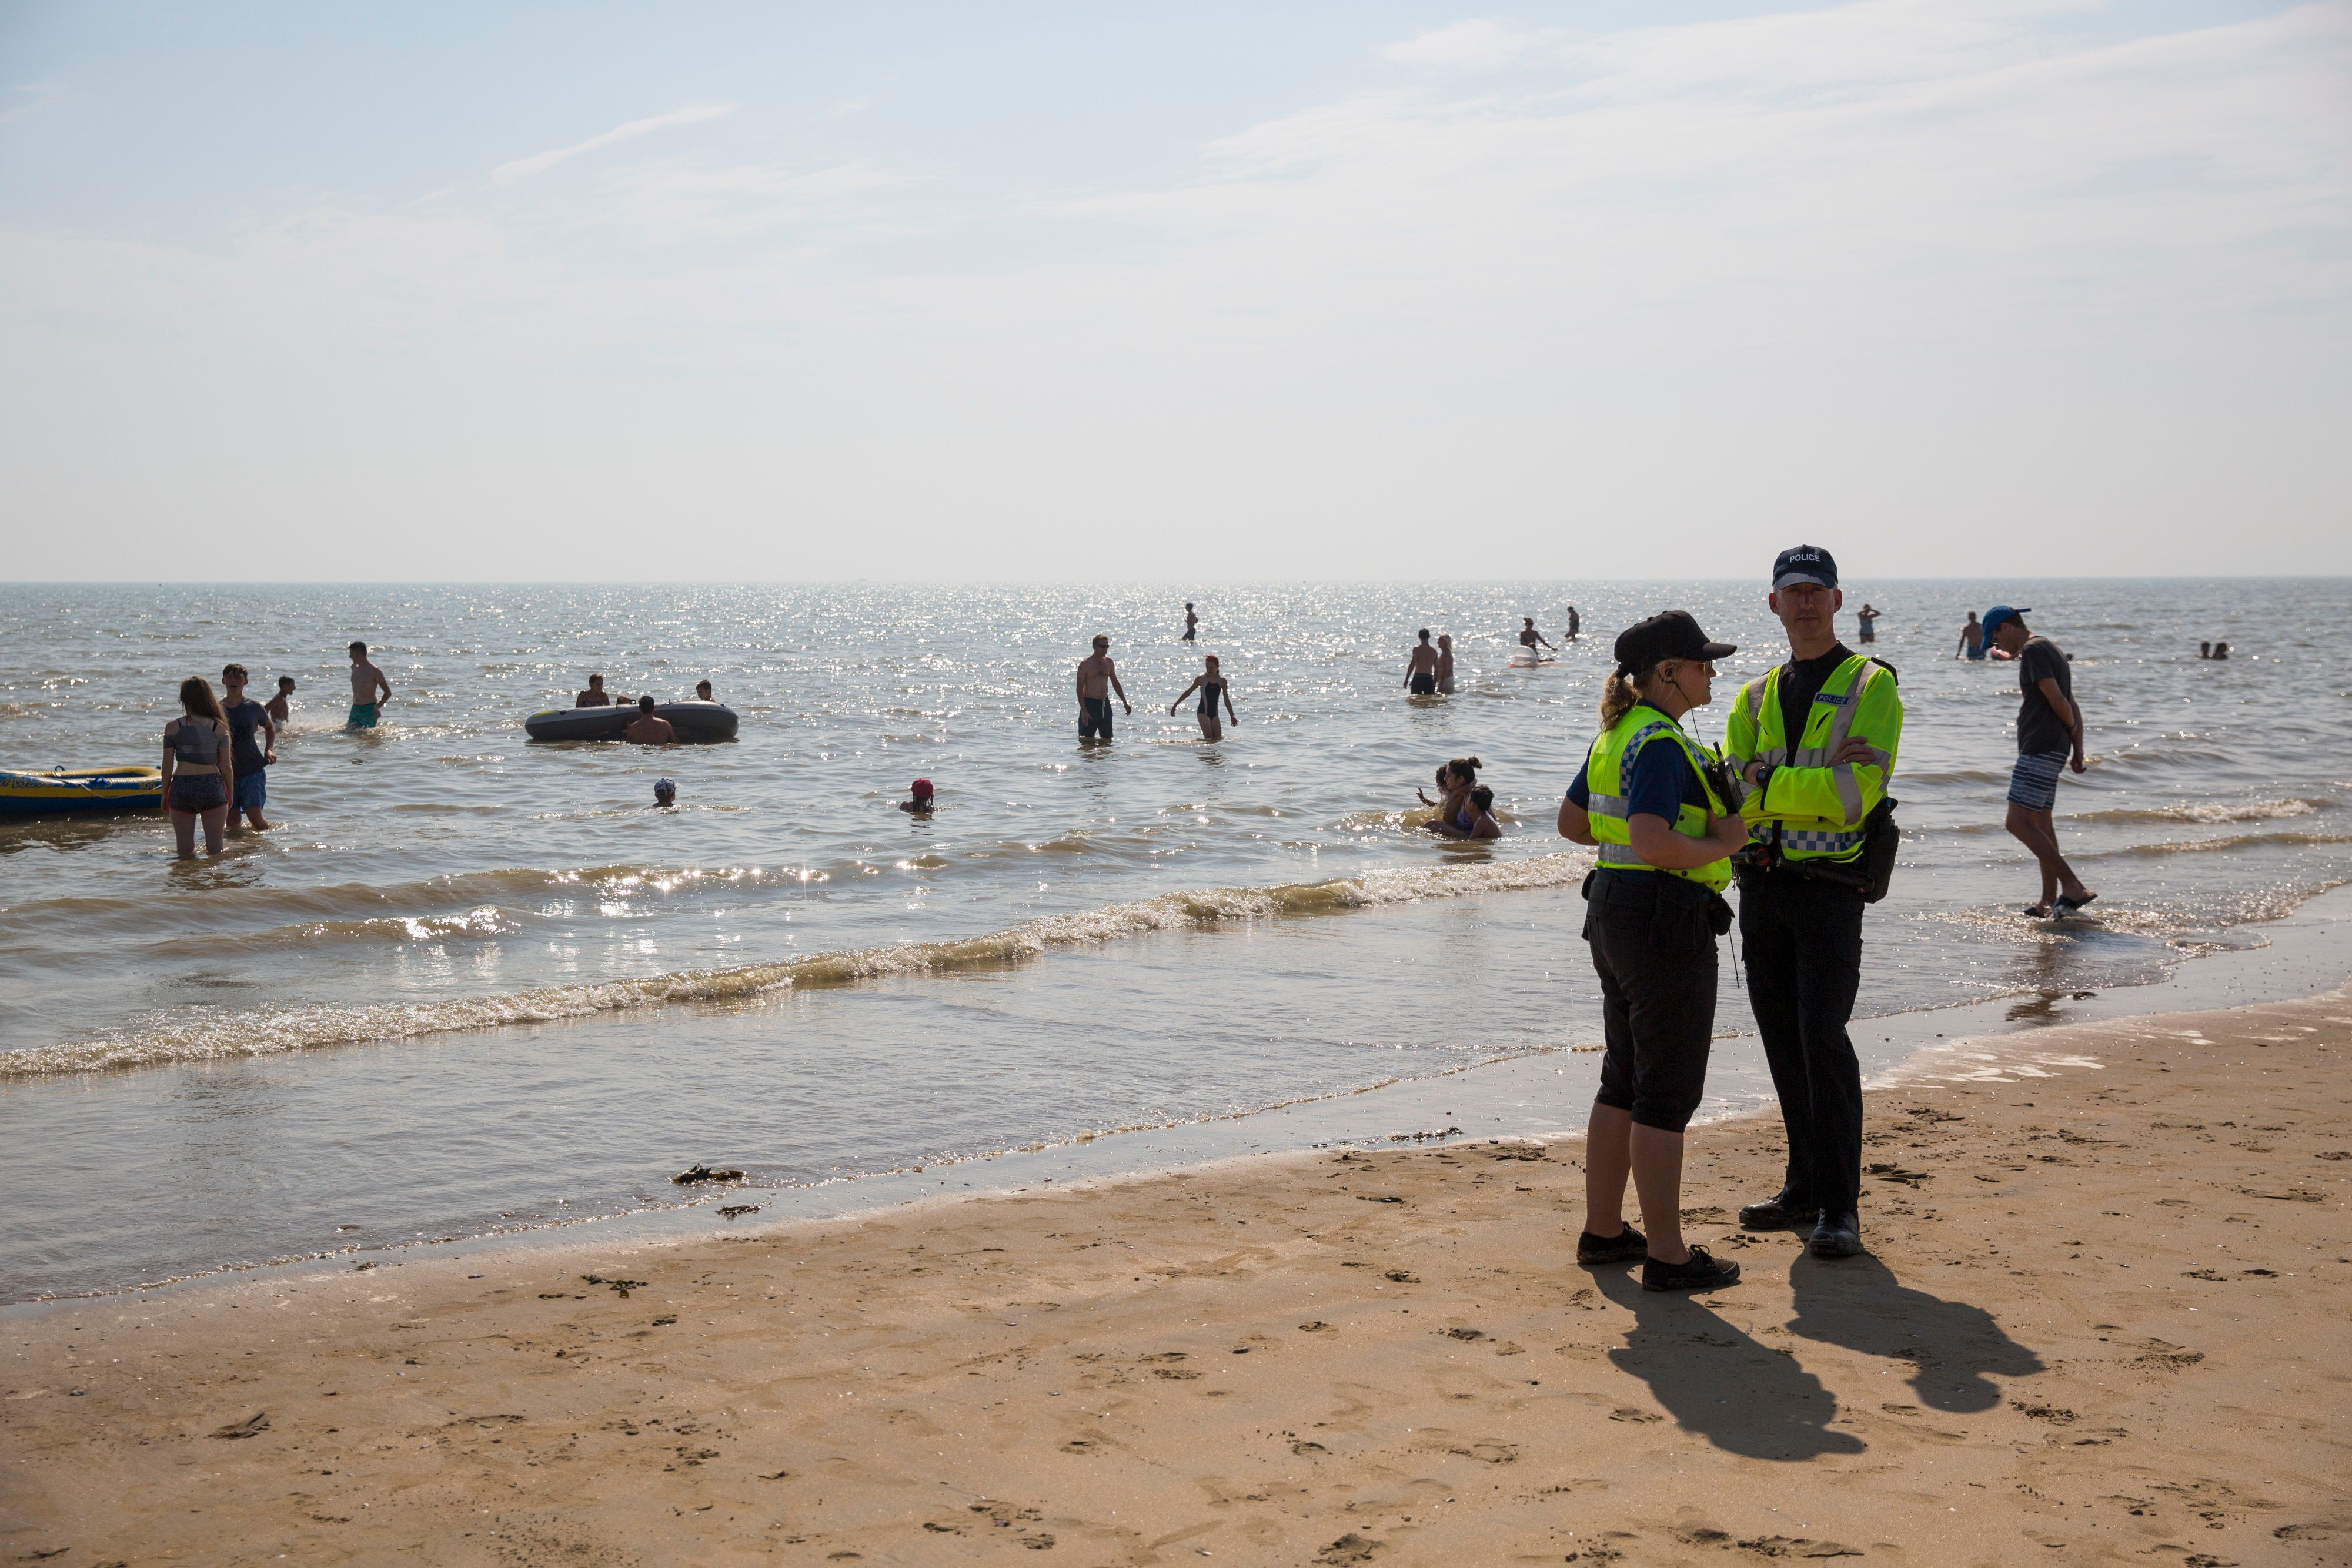 Lifeguards will be deployed at Camber Sands this weekend to 'reassure the public' following the deaths...